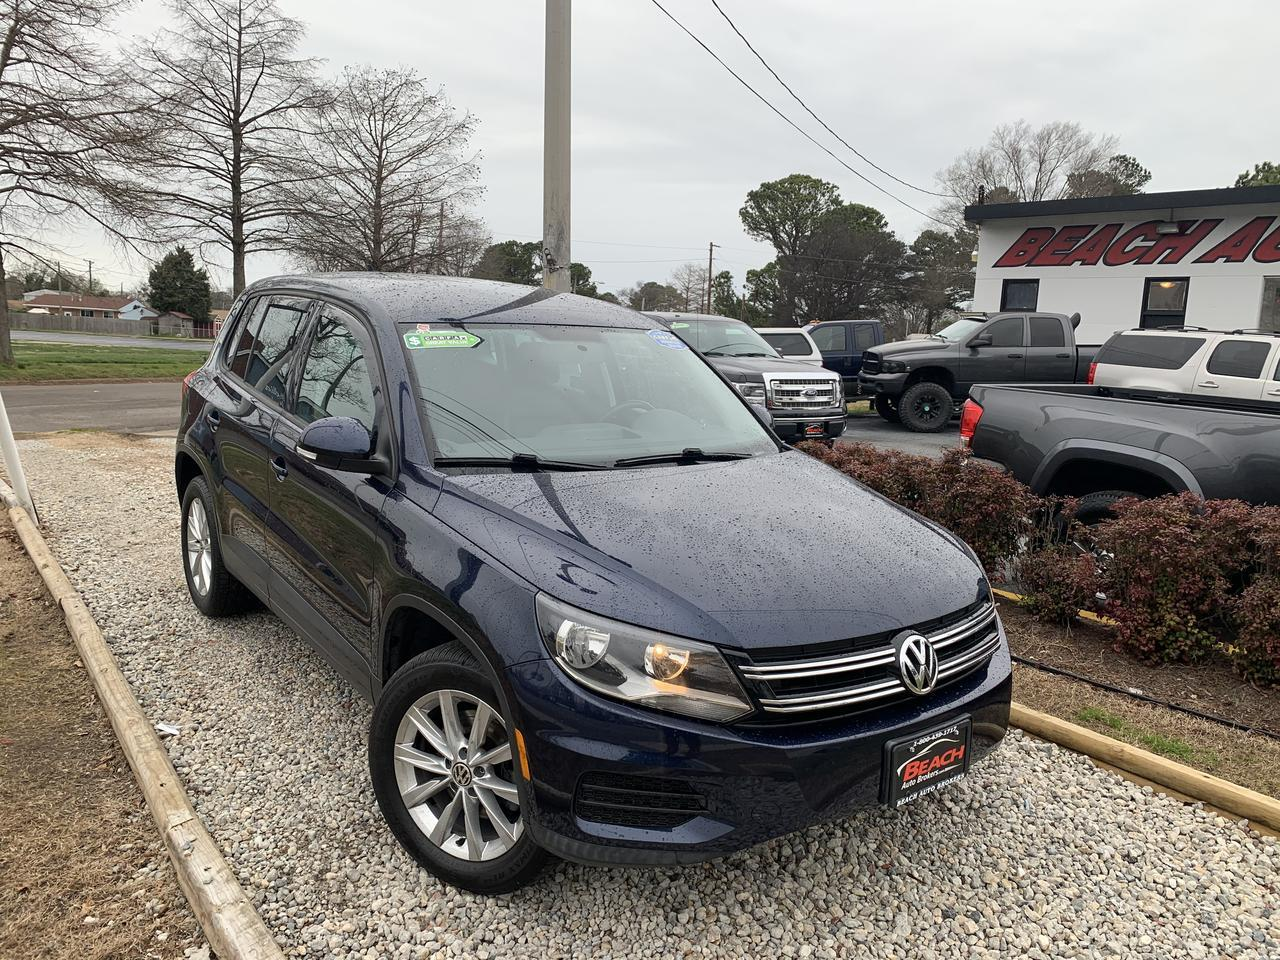 2014 VOLKSWAGEN TIGUAN SE, WARRANTY, LEATHER, SIRIUS RADIO, AUX/USB PORT, PARKING SENSORS, CLEAN CARFAX!